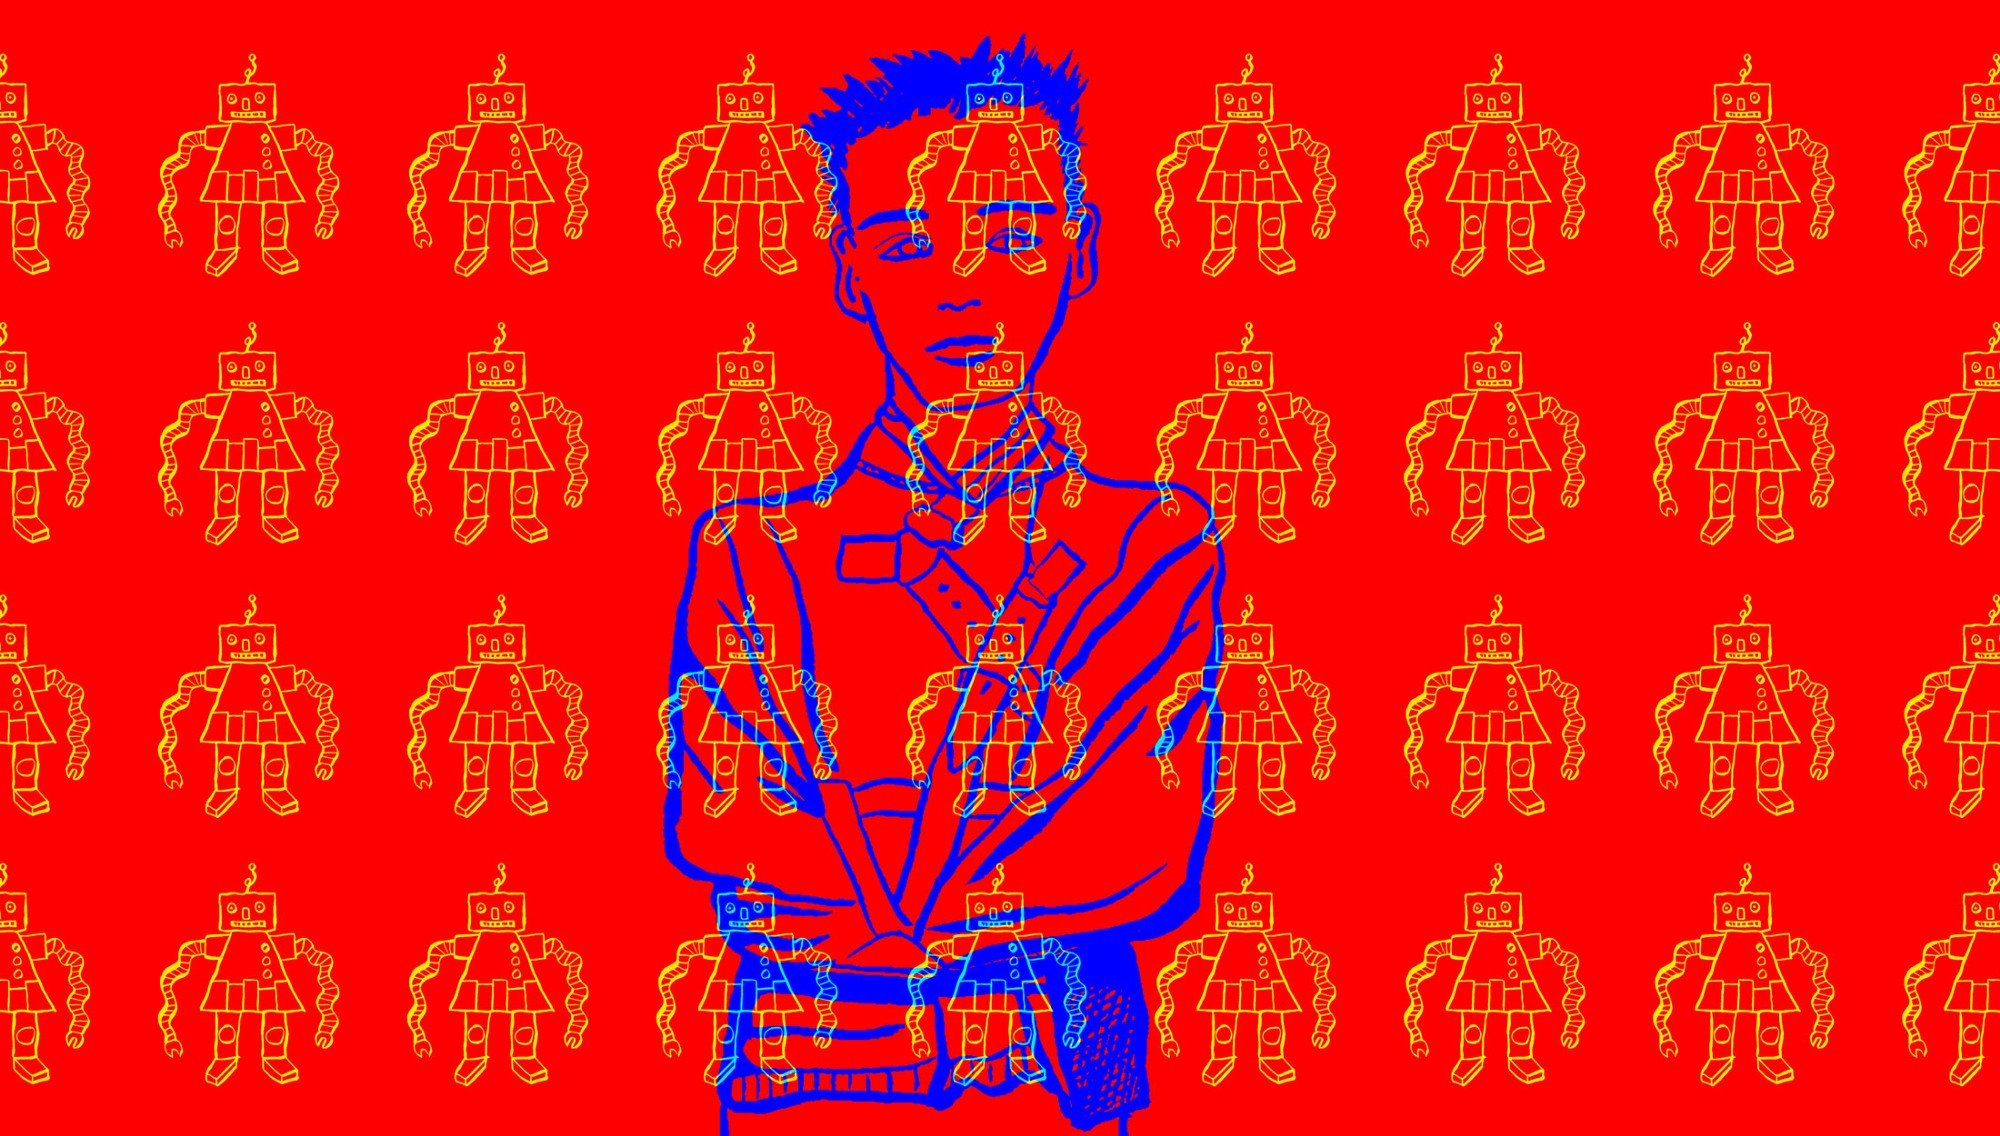 Illustration of a man in a straitjacket with an overlaying pattern of robots covering the whole image.